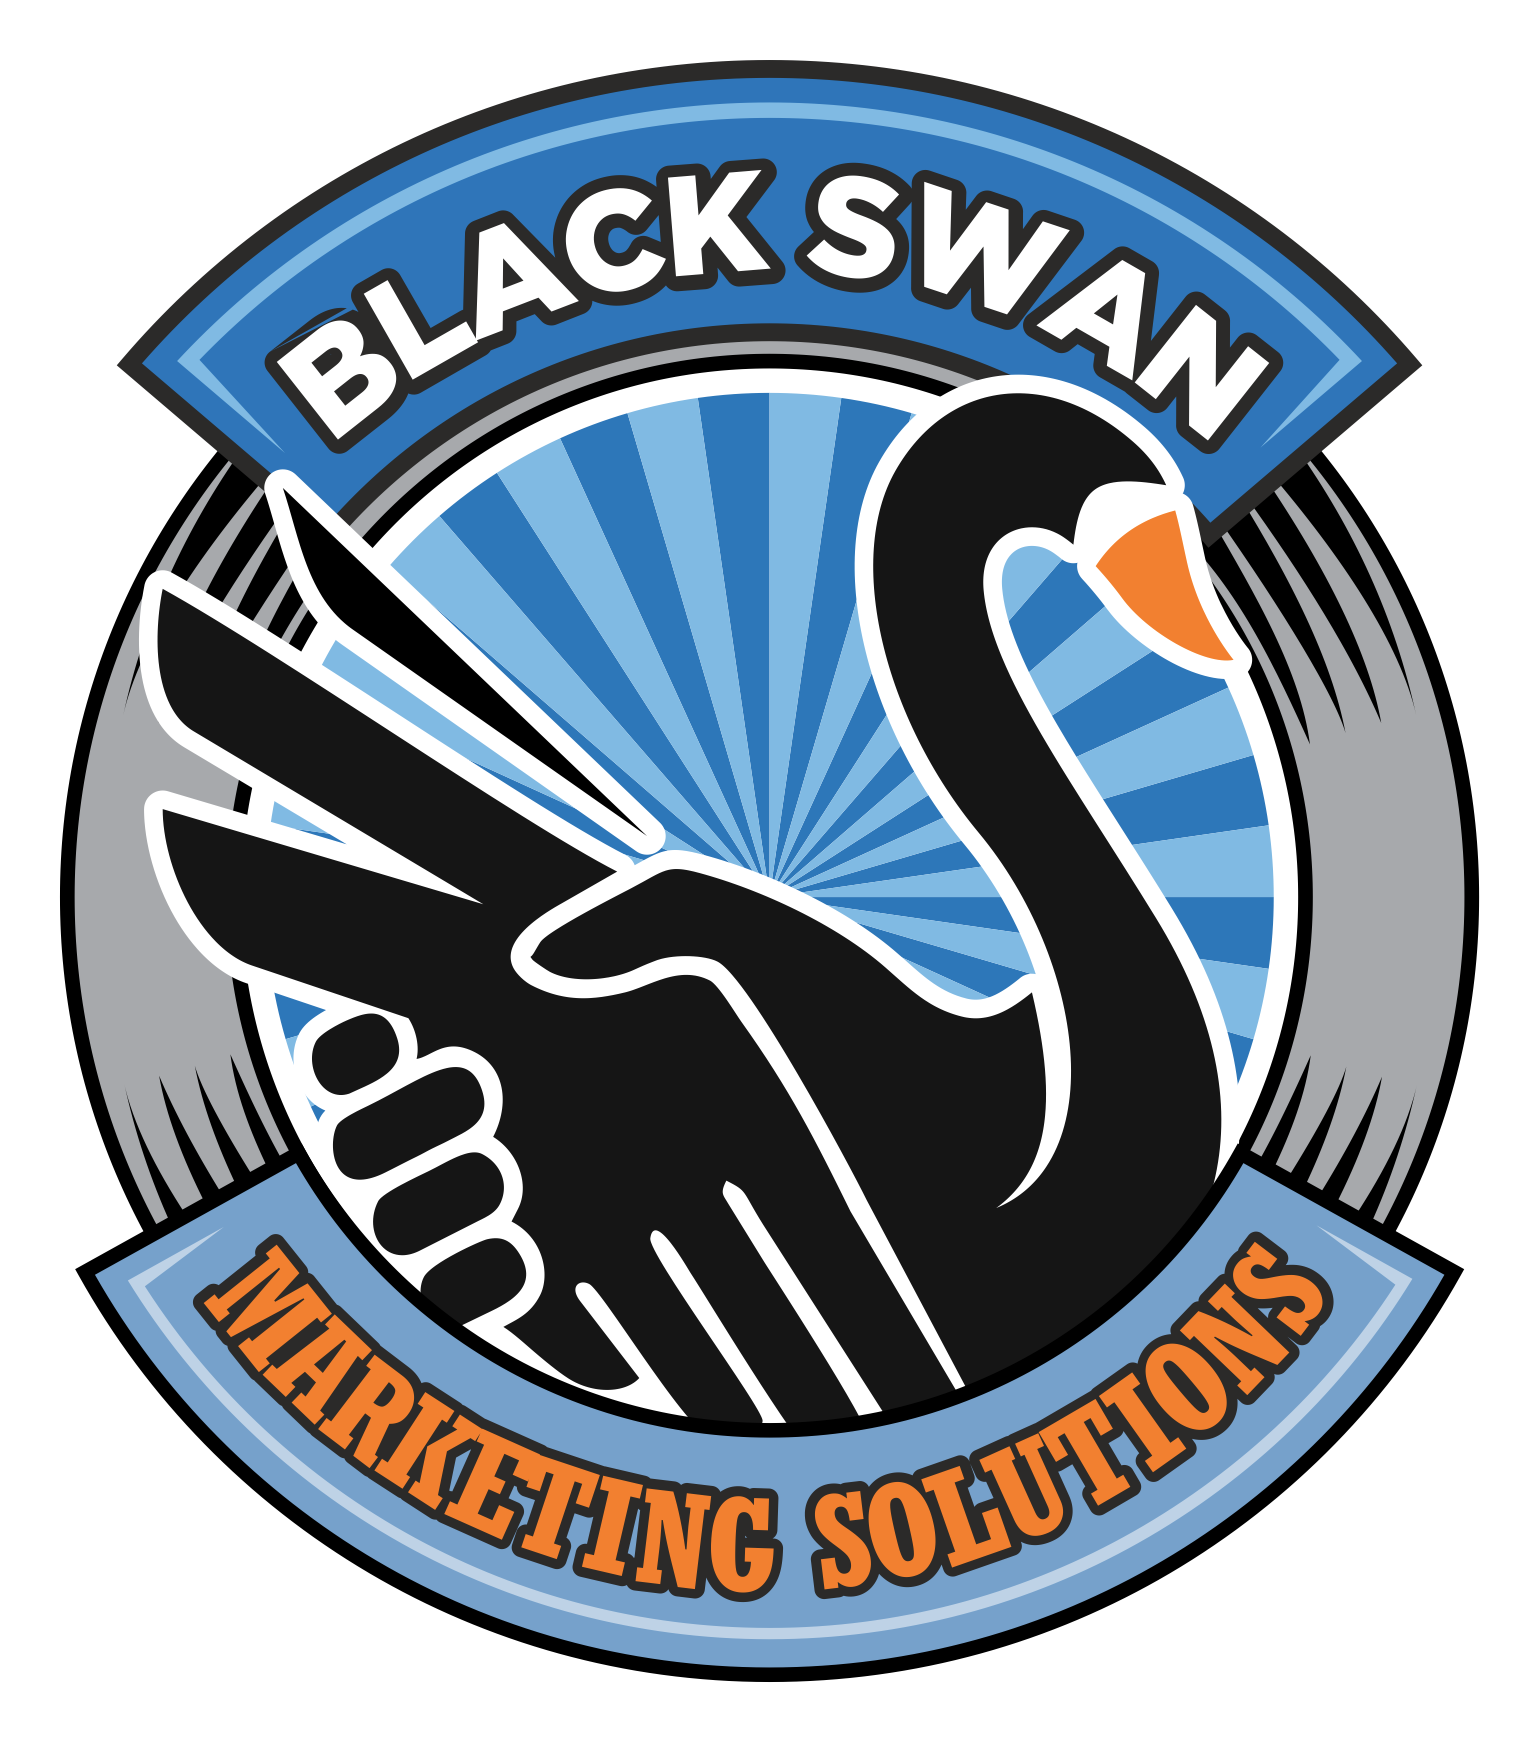 Black Swan Marketing Solutions